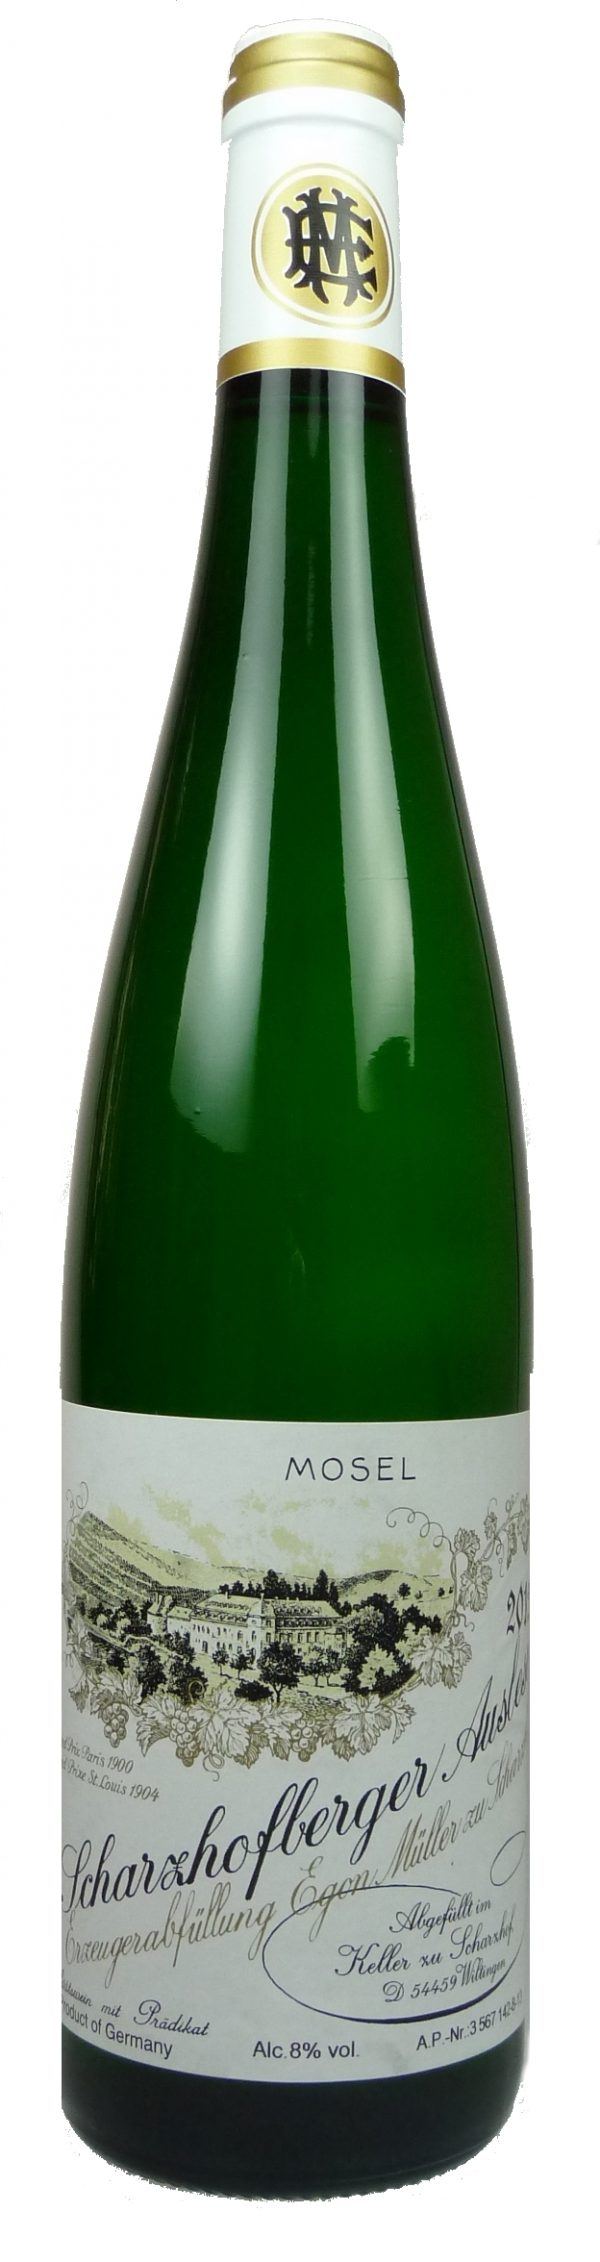 Scharzhofberger Riesling Auslese 2017